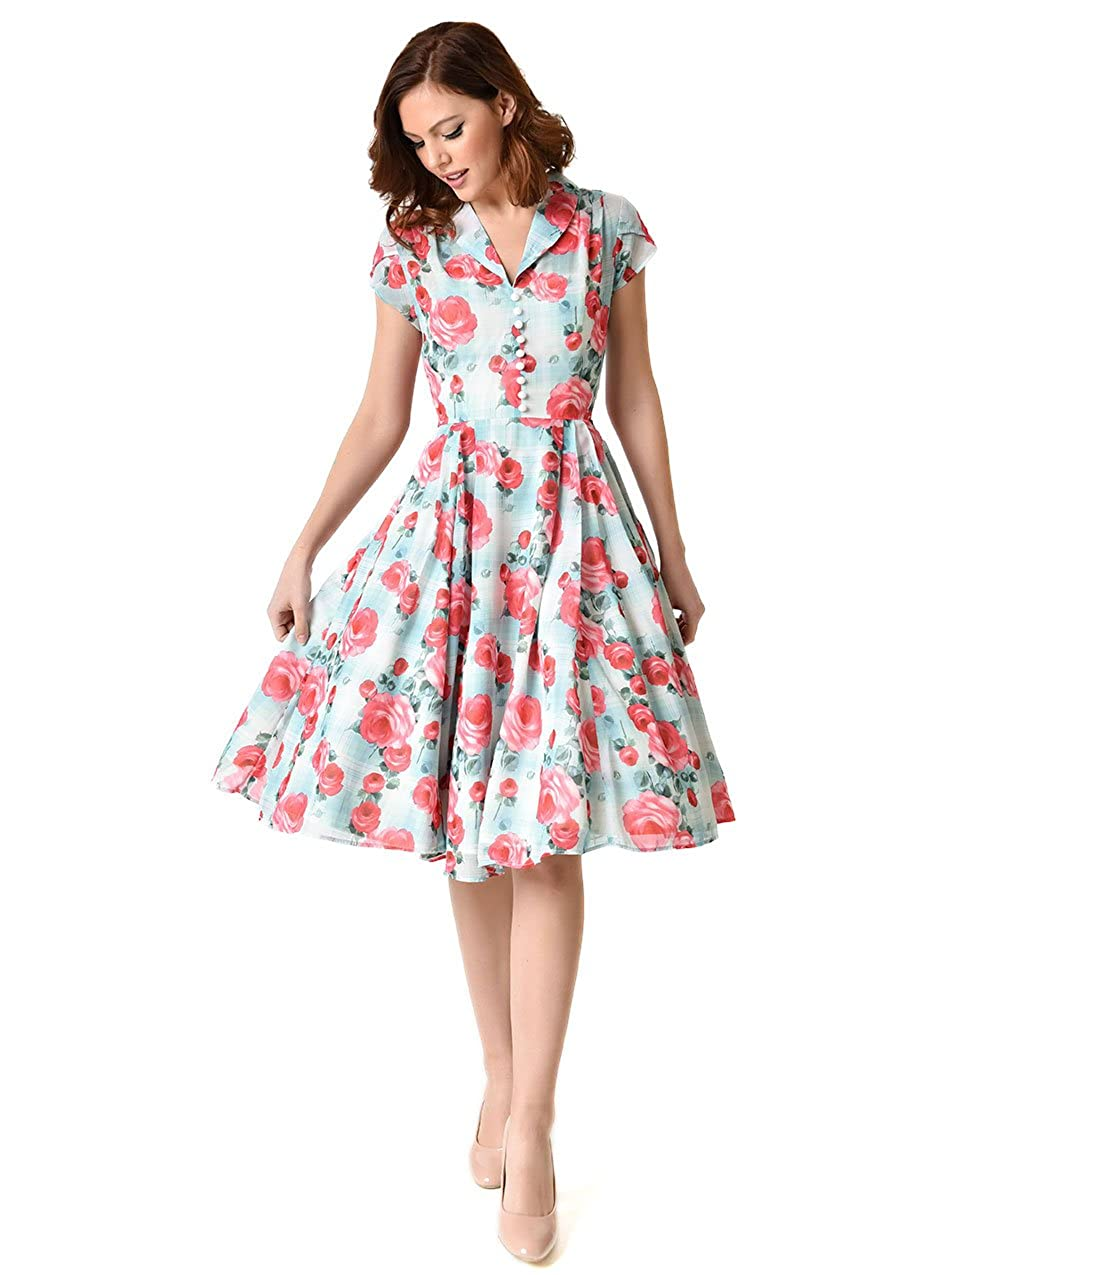 b493f64aedd21 Unique Vintage Hell Bunny 1950s Mint Floral Cap Sleeve Suzannah Chiffon  Swing Dress at Amazon Women's Clothing store: